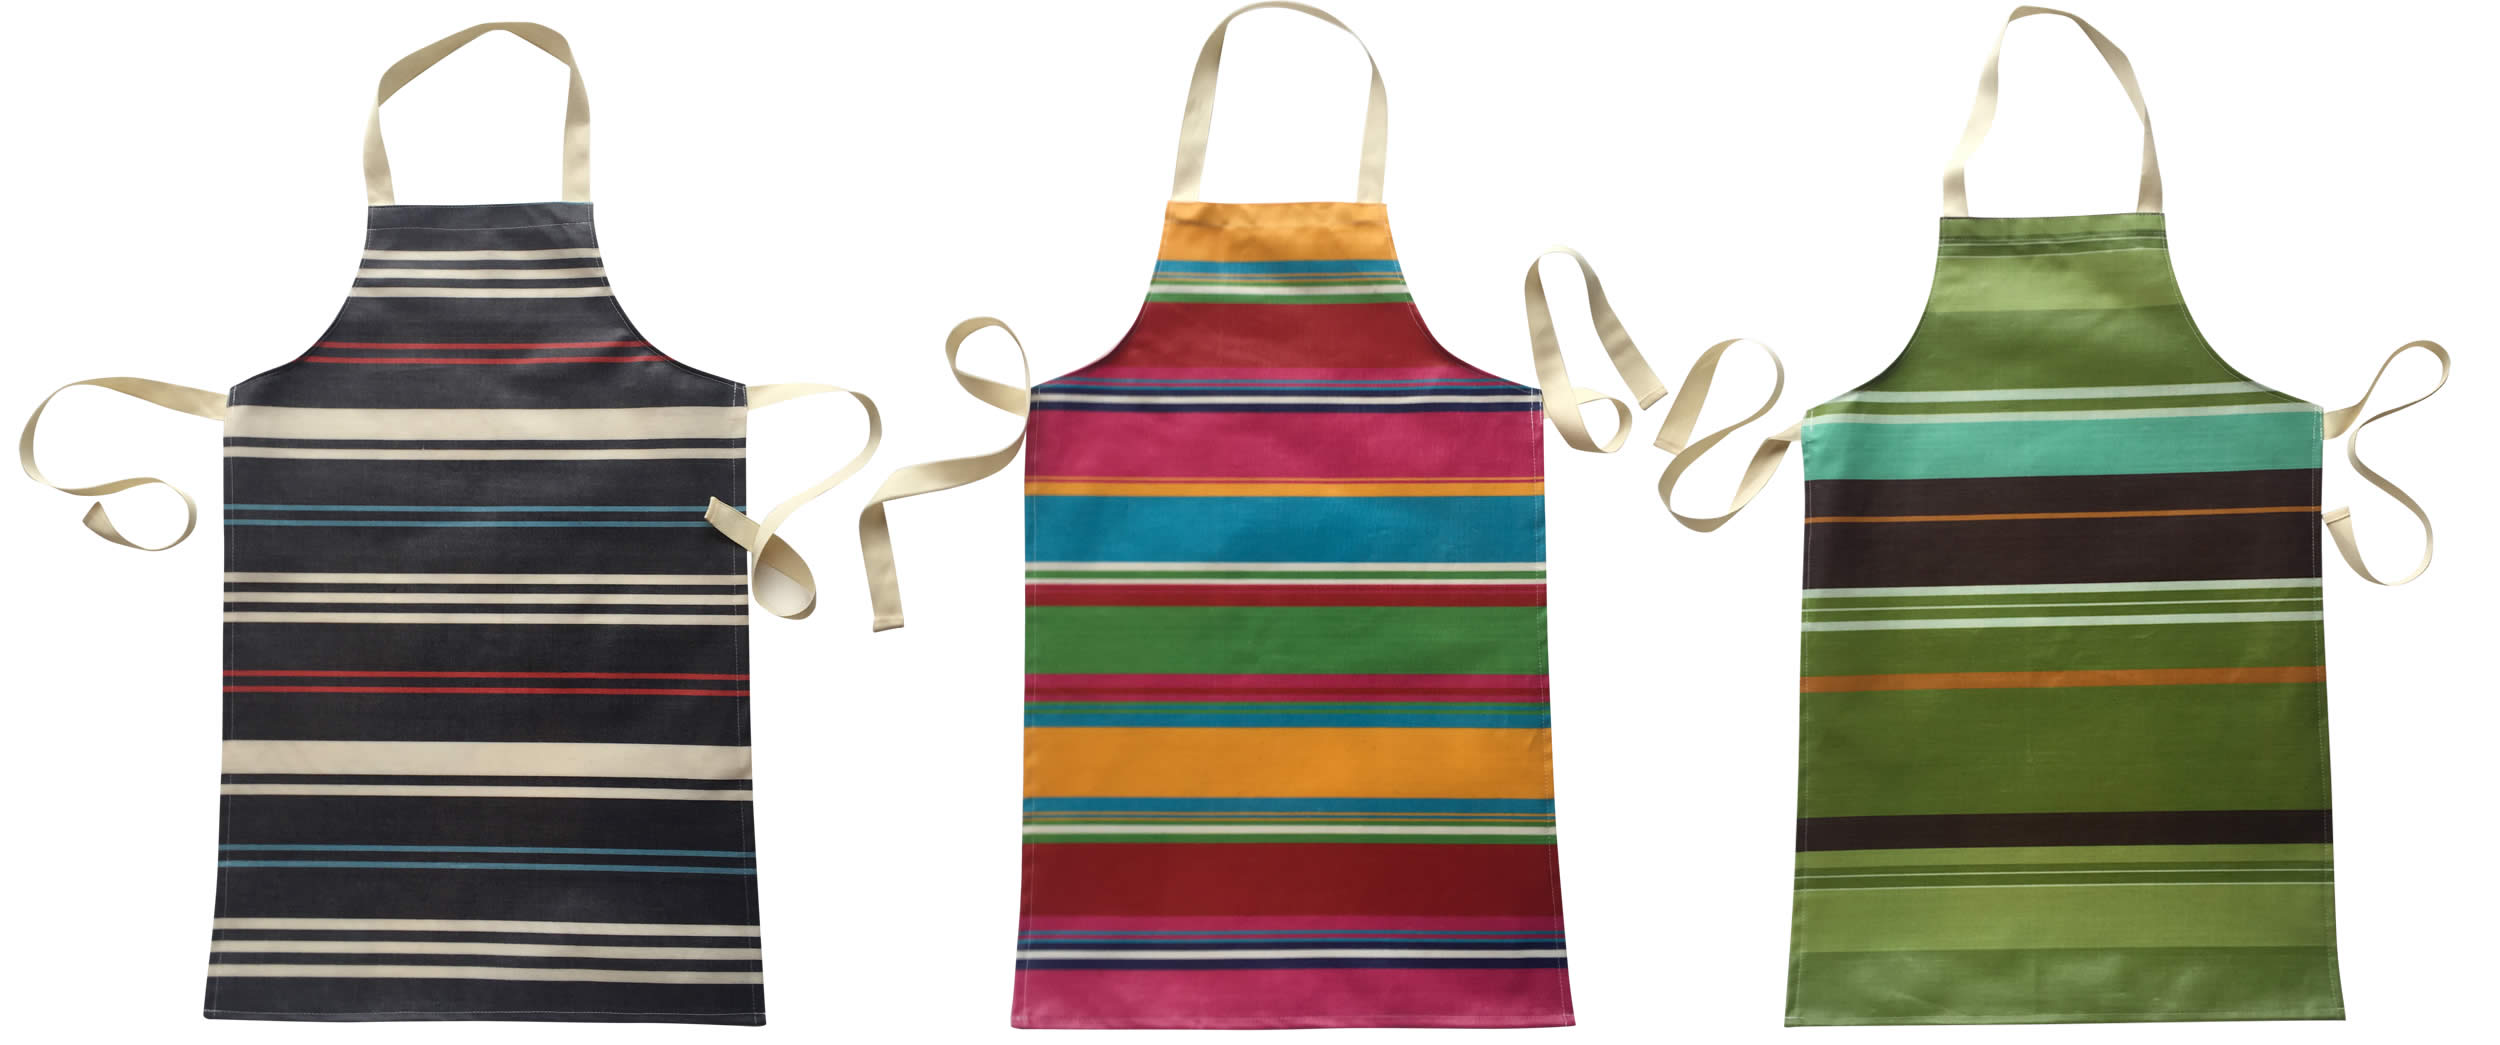 Striped PVC Kids Aprons | Childrens Striped Oilcloth Aprons